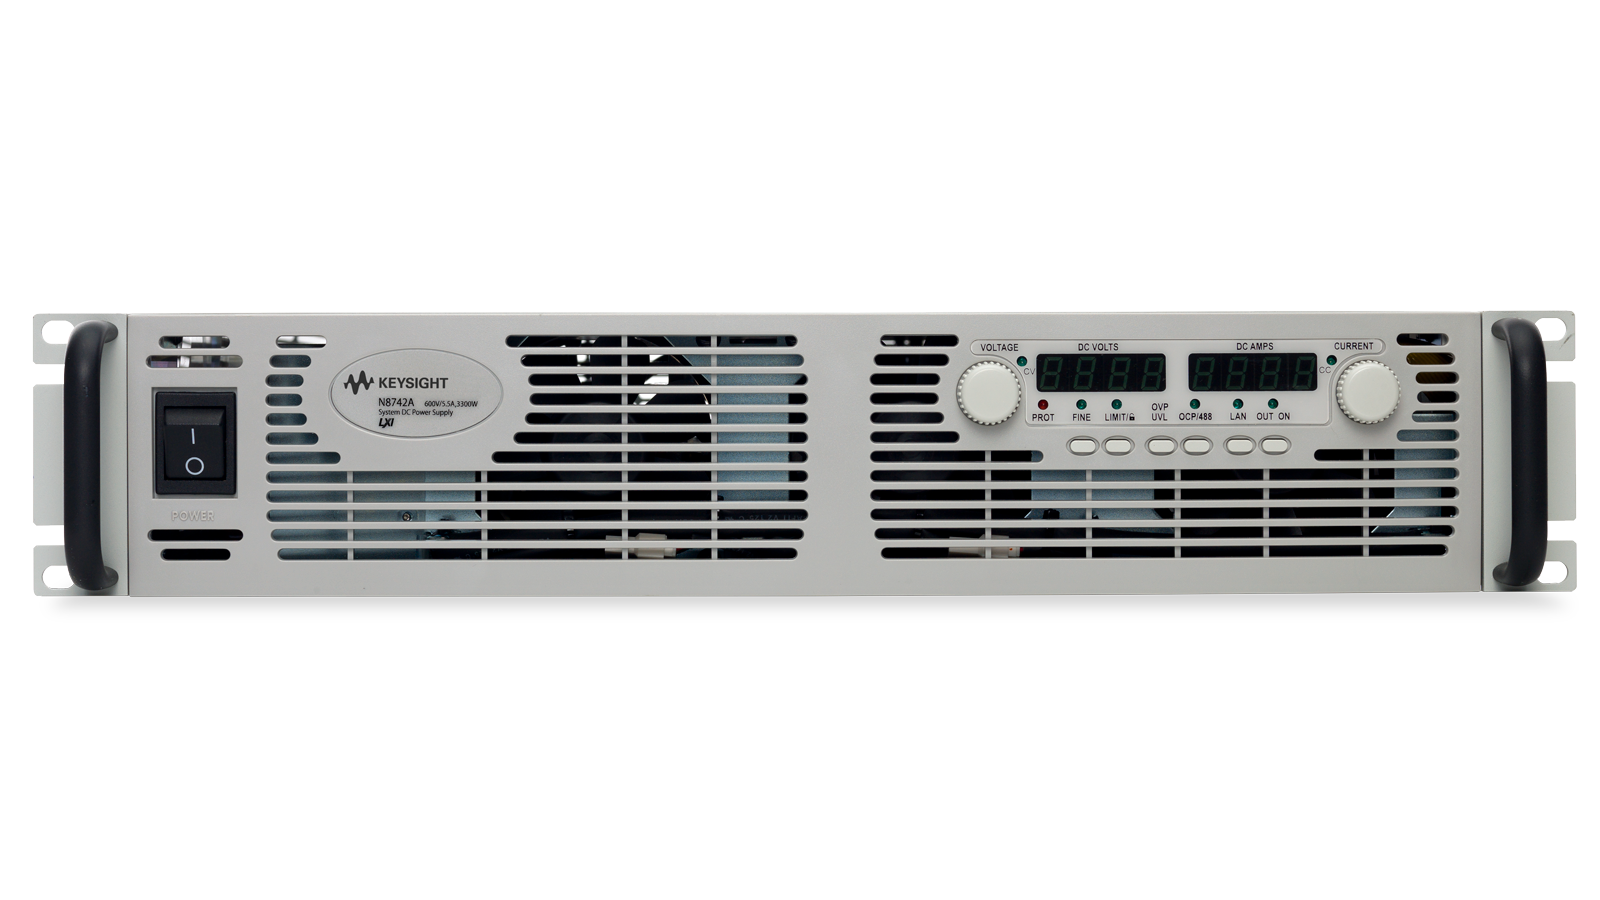 N8700 Series Programmable Supply Front Panel